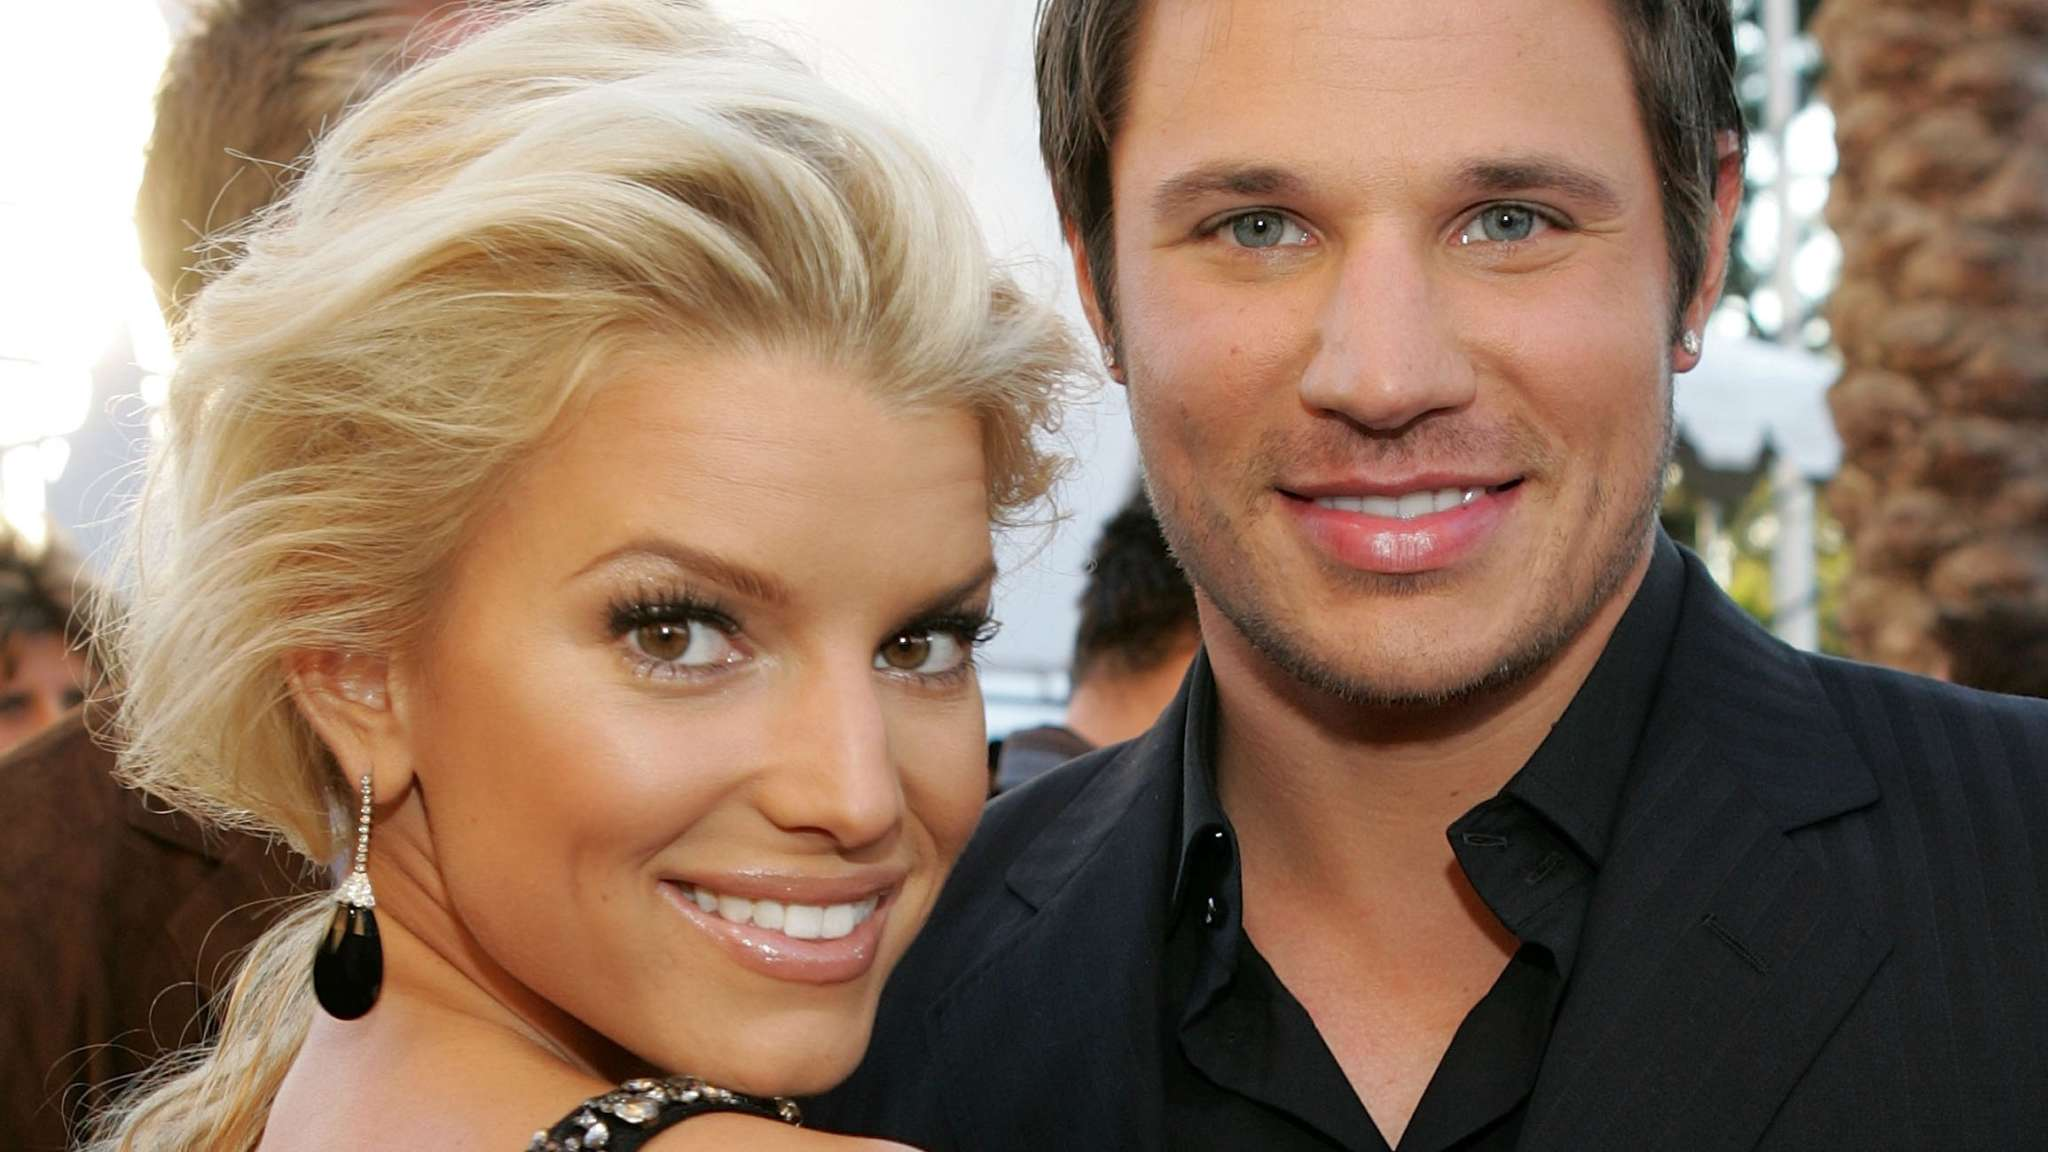 Jessica Simpson Reveals Why Her Marriage To Nick Lachey Ended